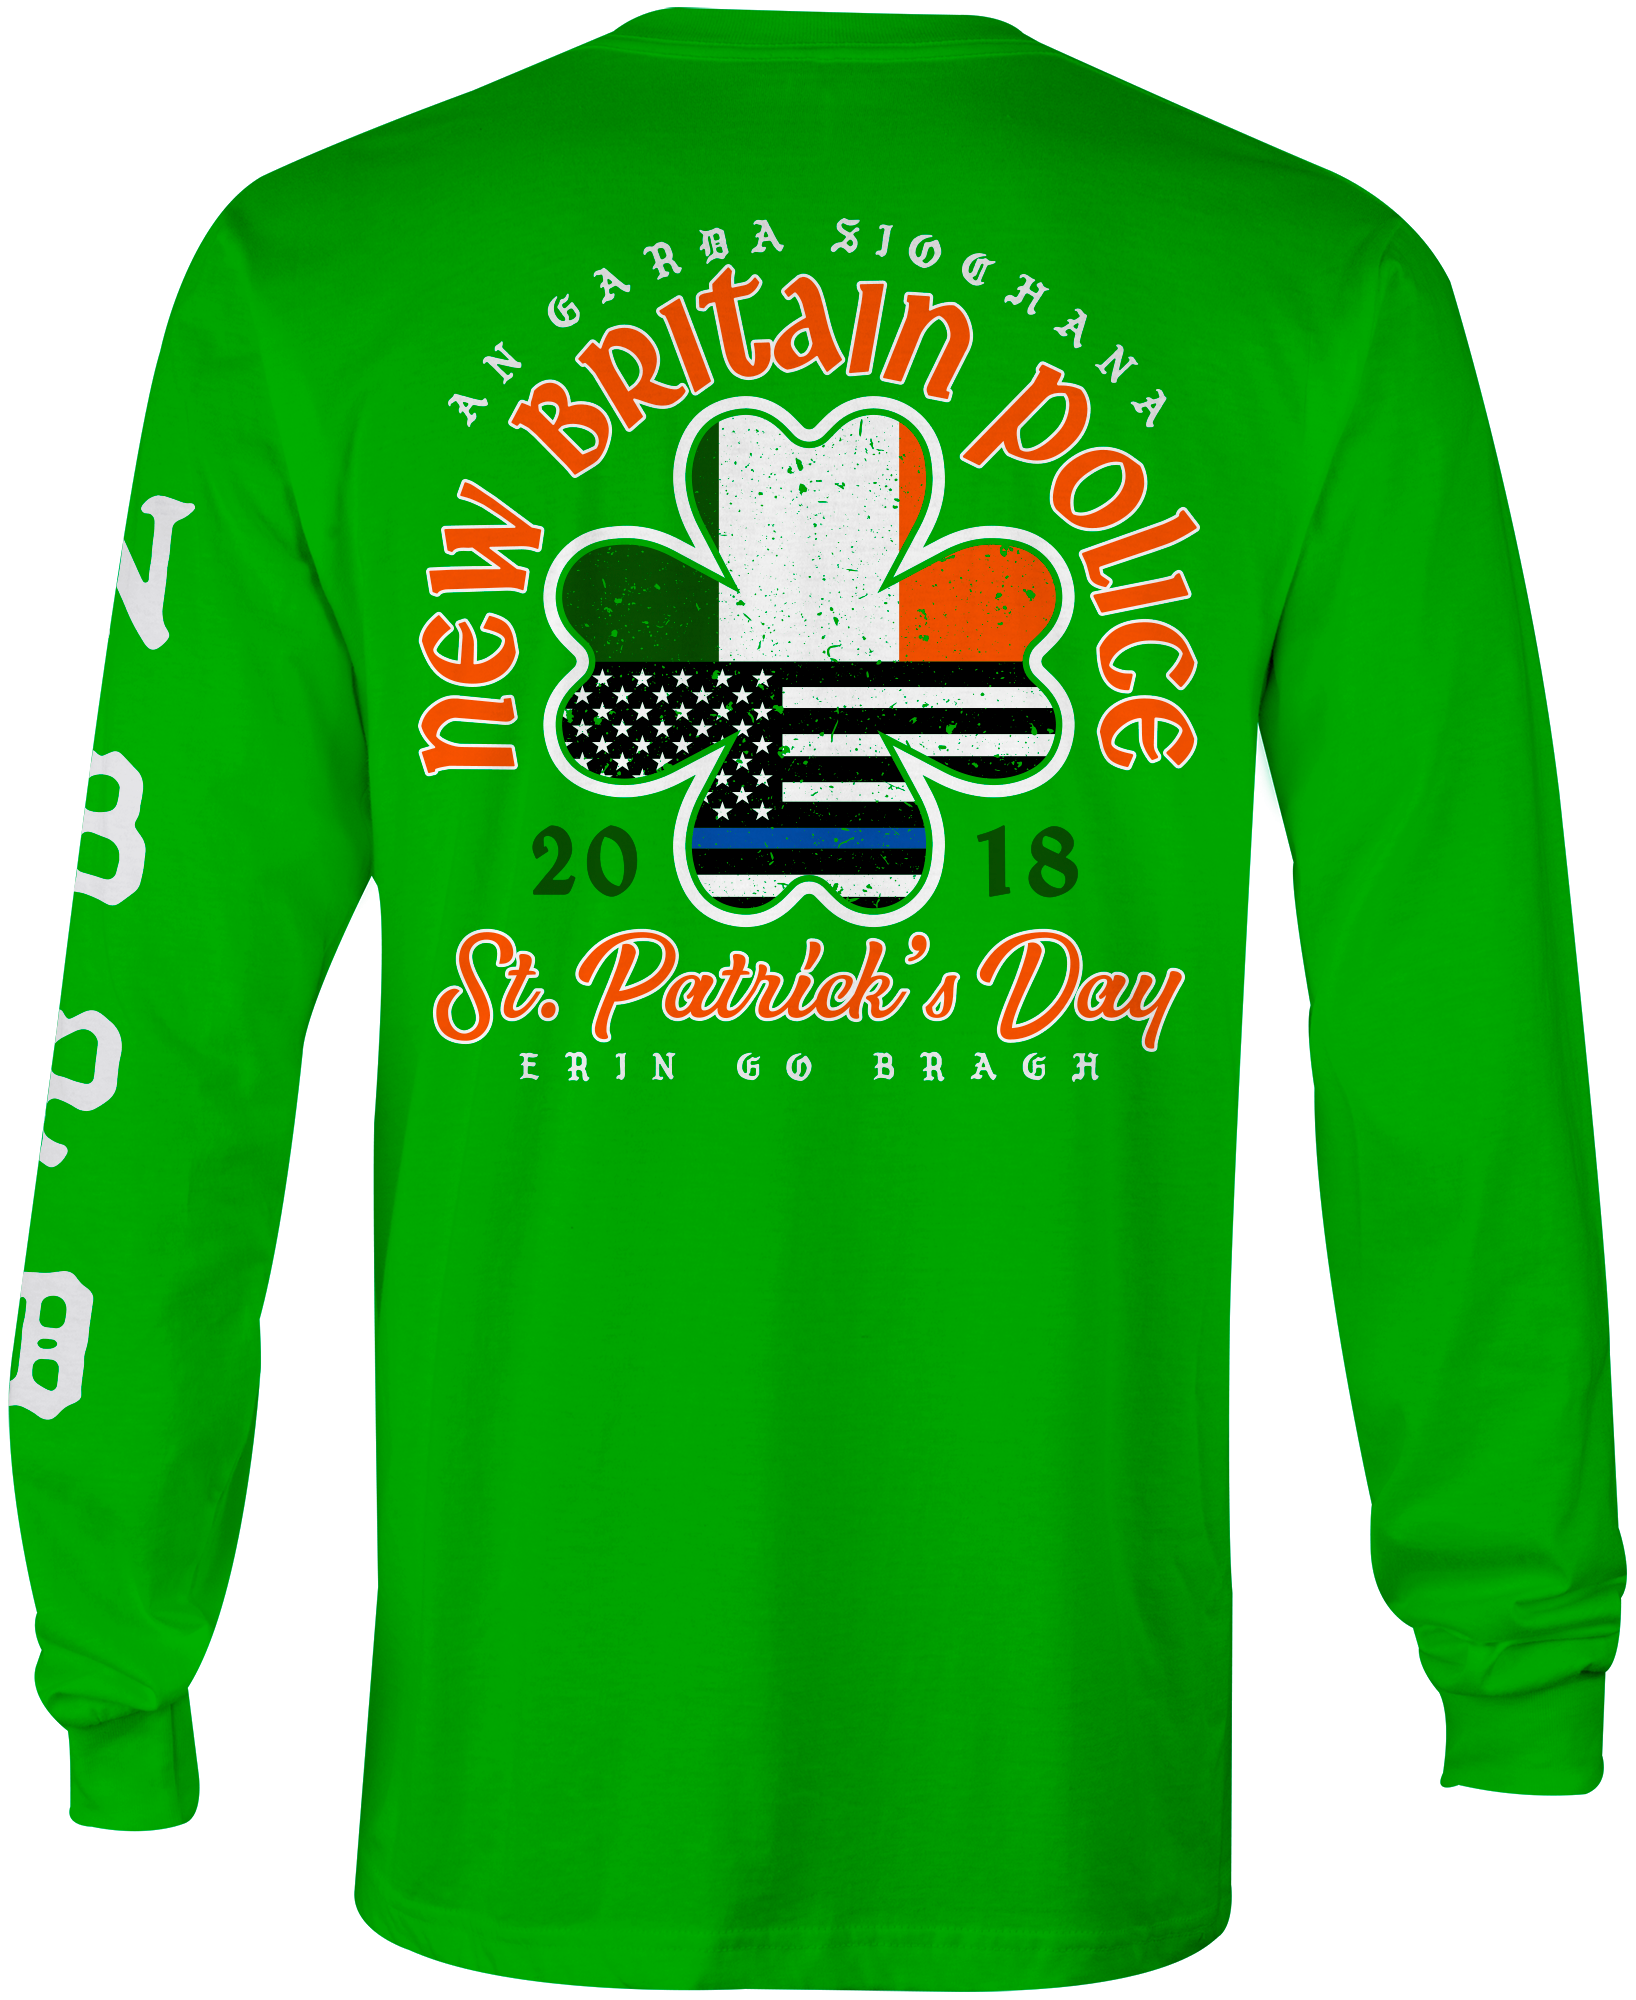 New Britain PD St. Paddy's Day 2018